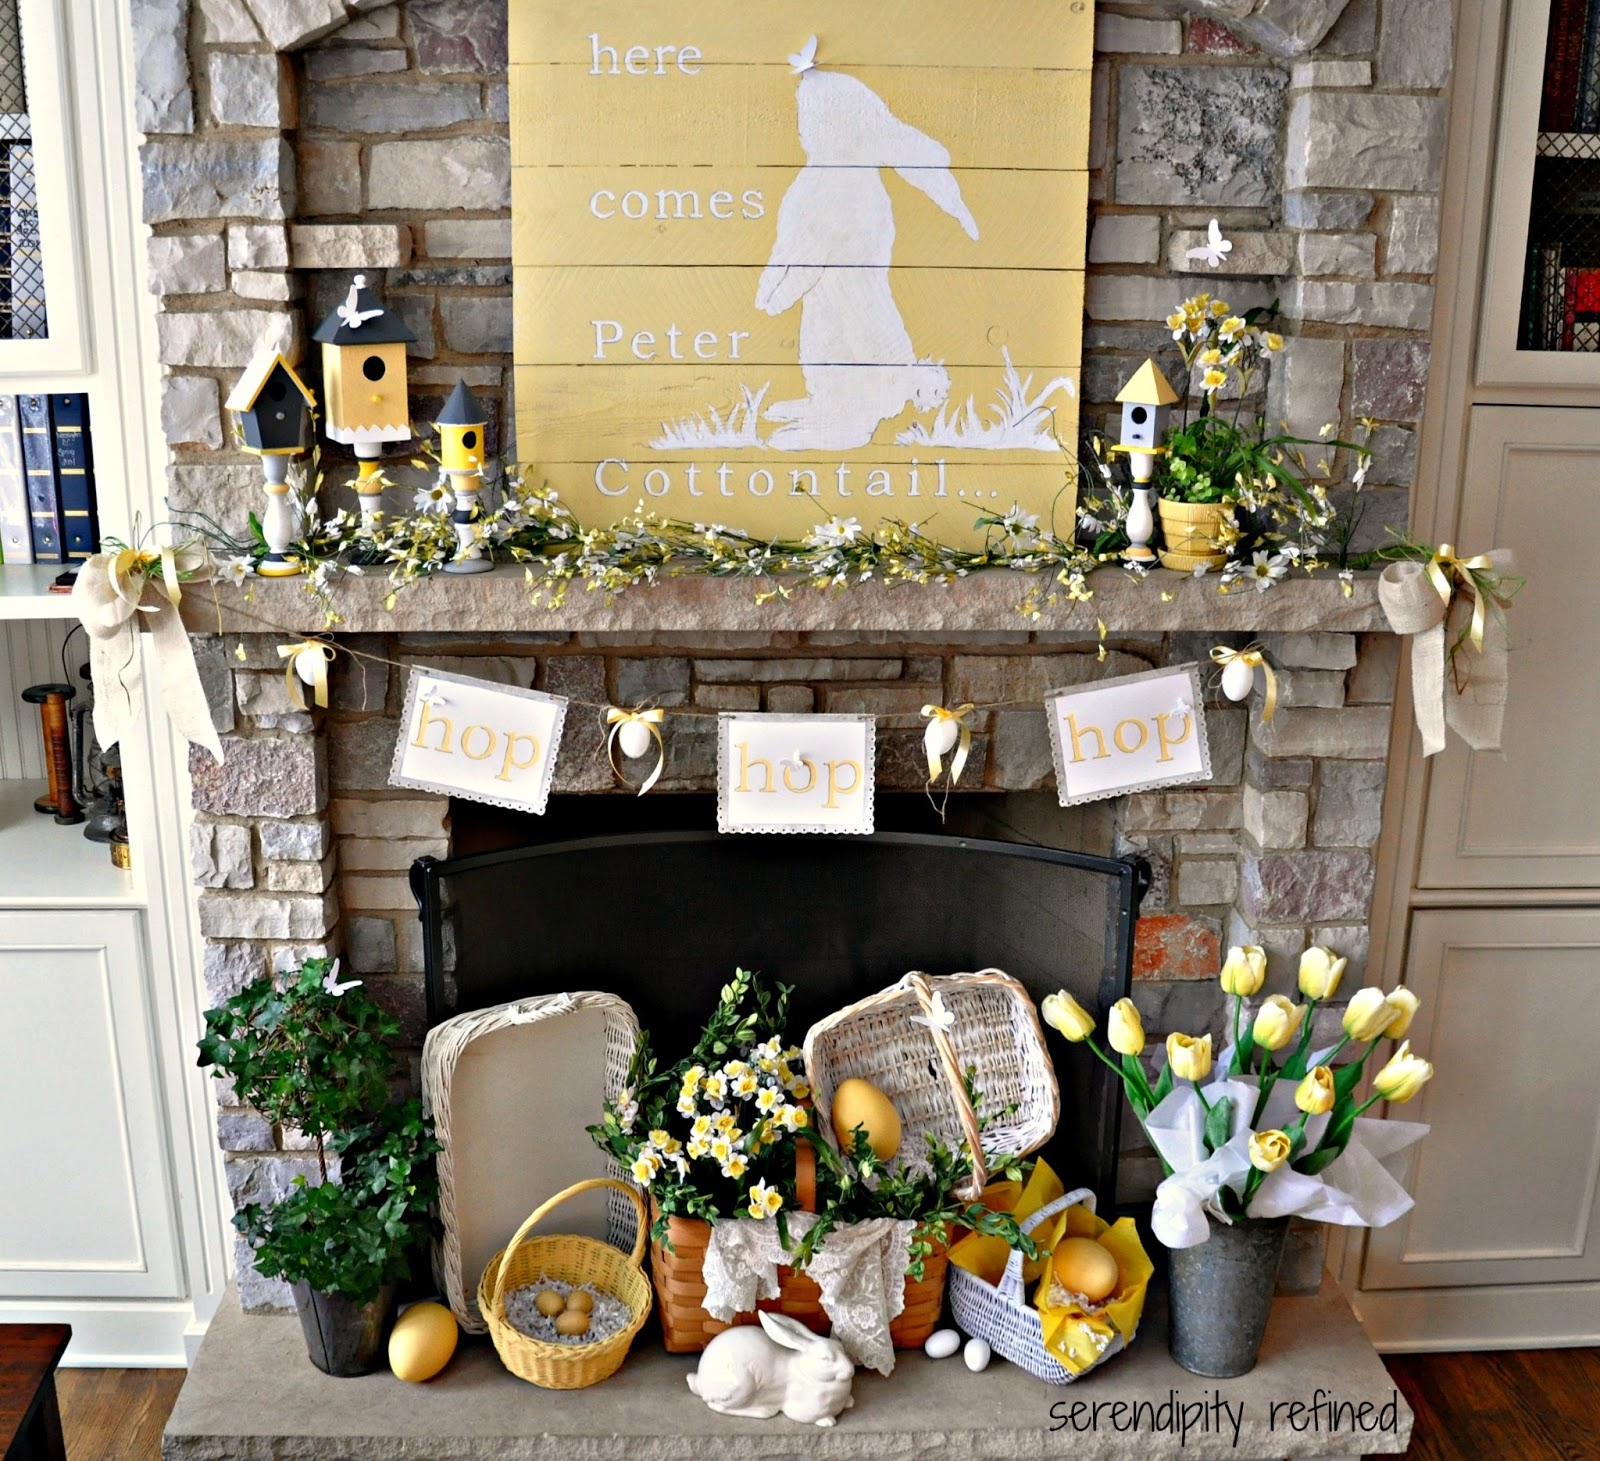 18 Spring Decor Ideas: Here Comes Peter Cottontail {Spring Mantel}